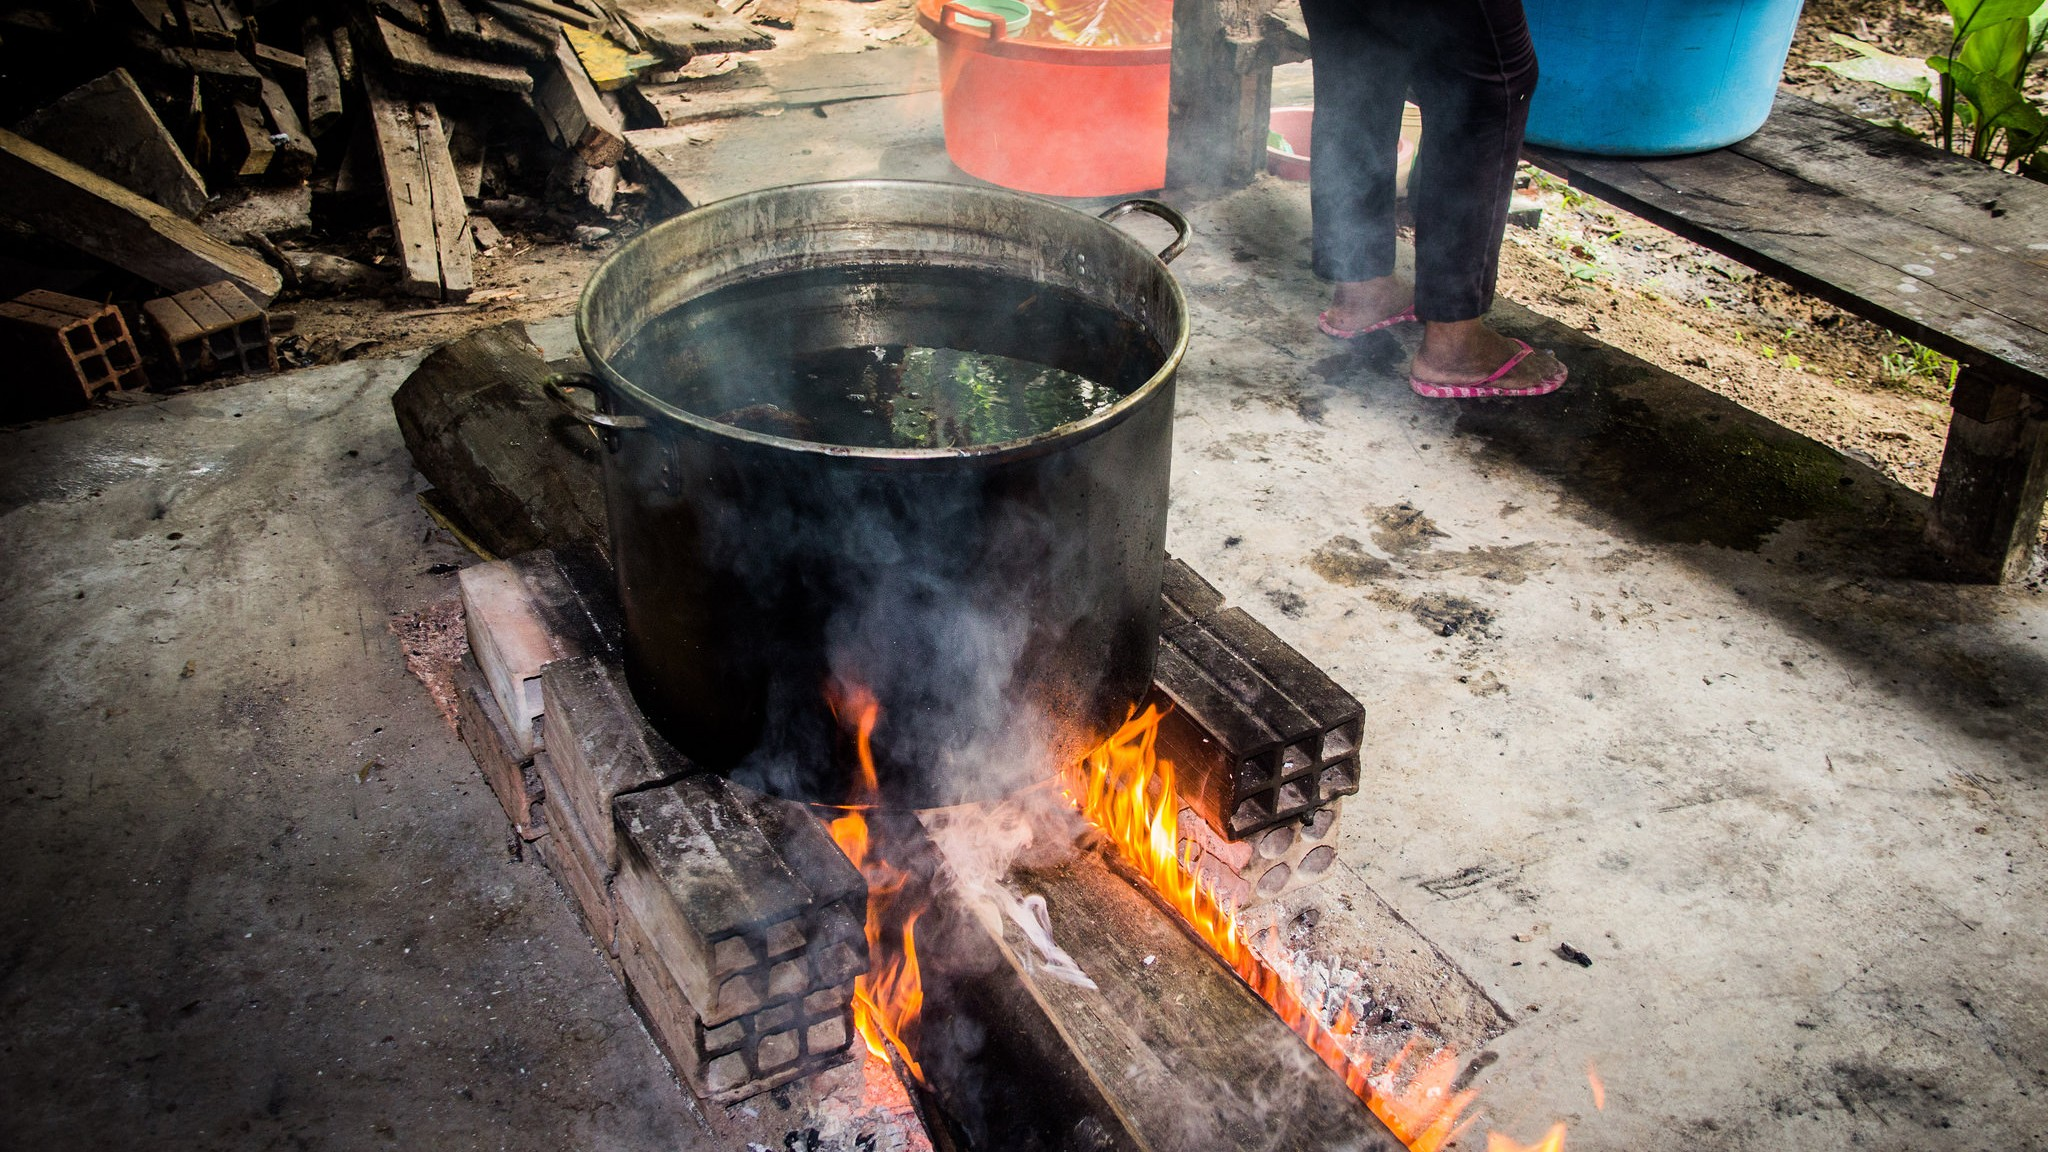 I Went to an Ayahuasca Divorce Ceremony